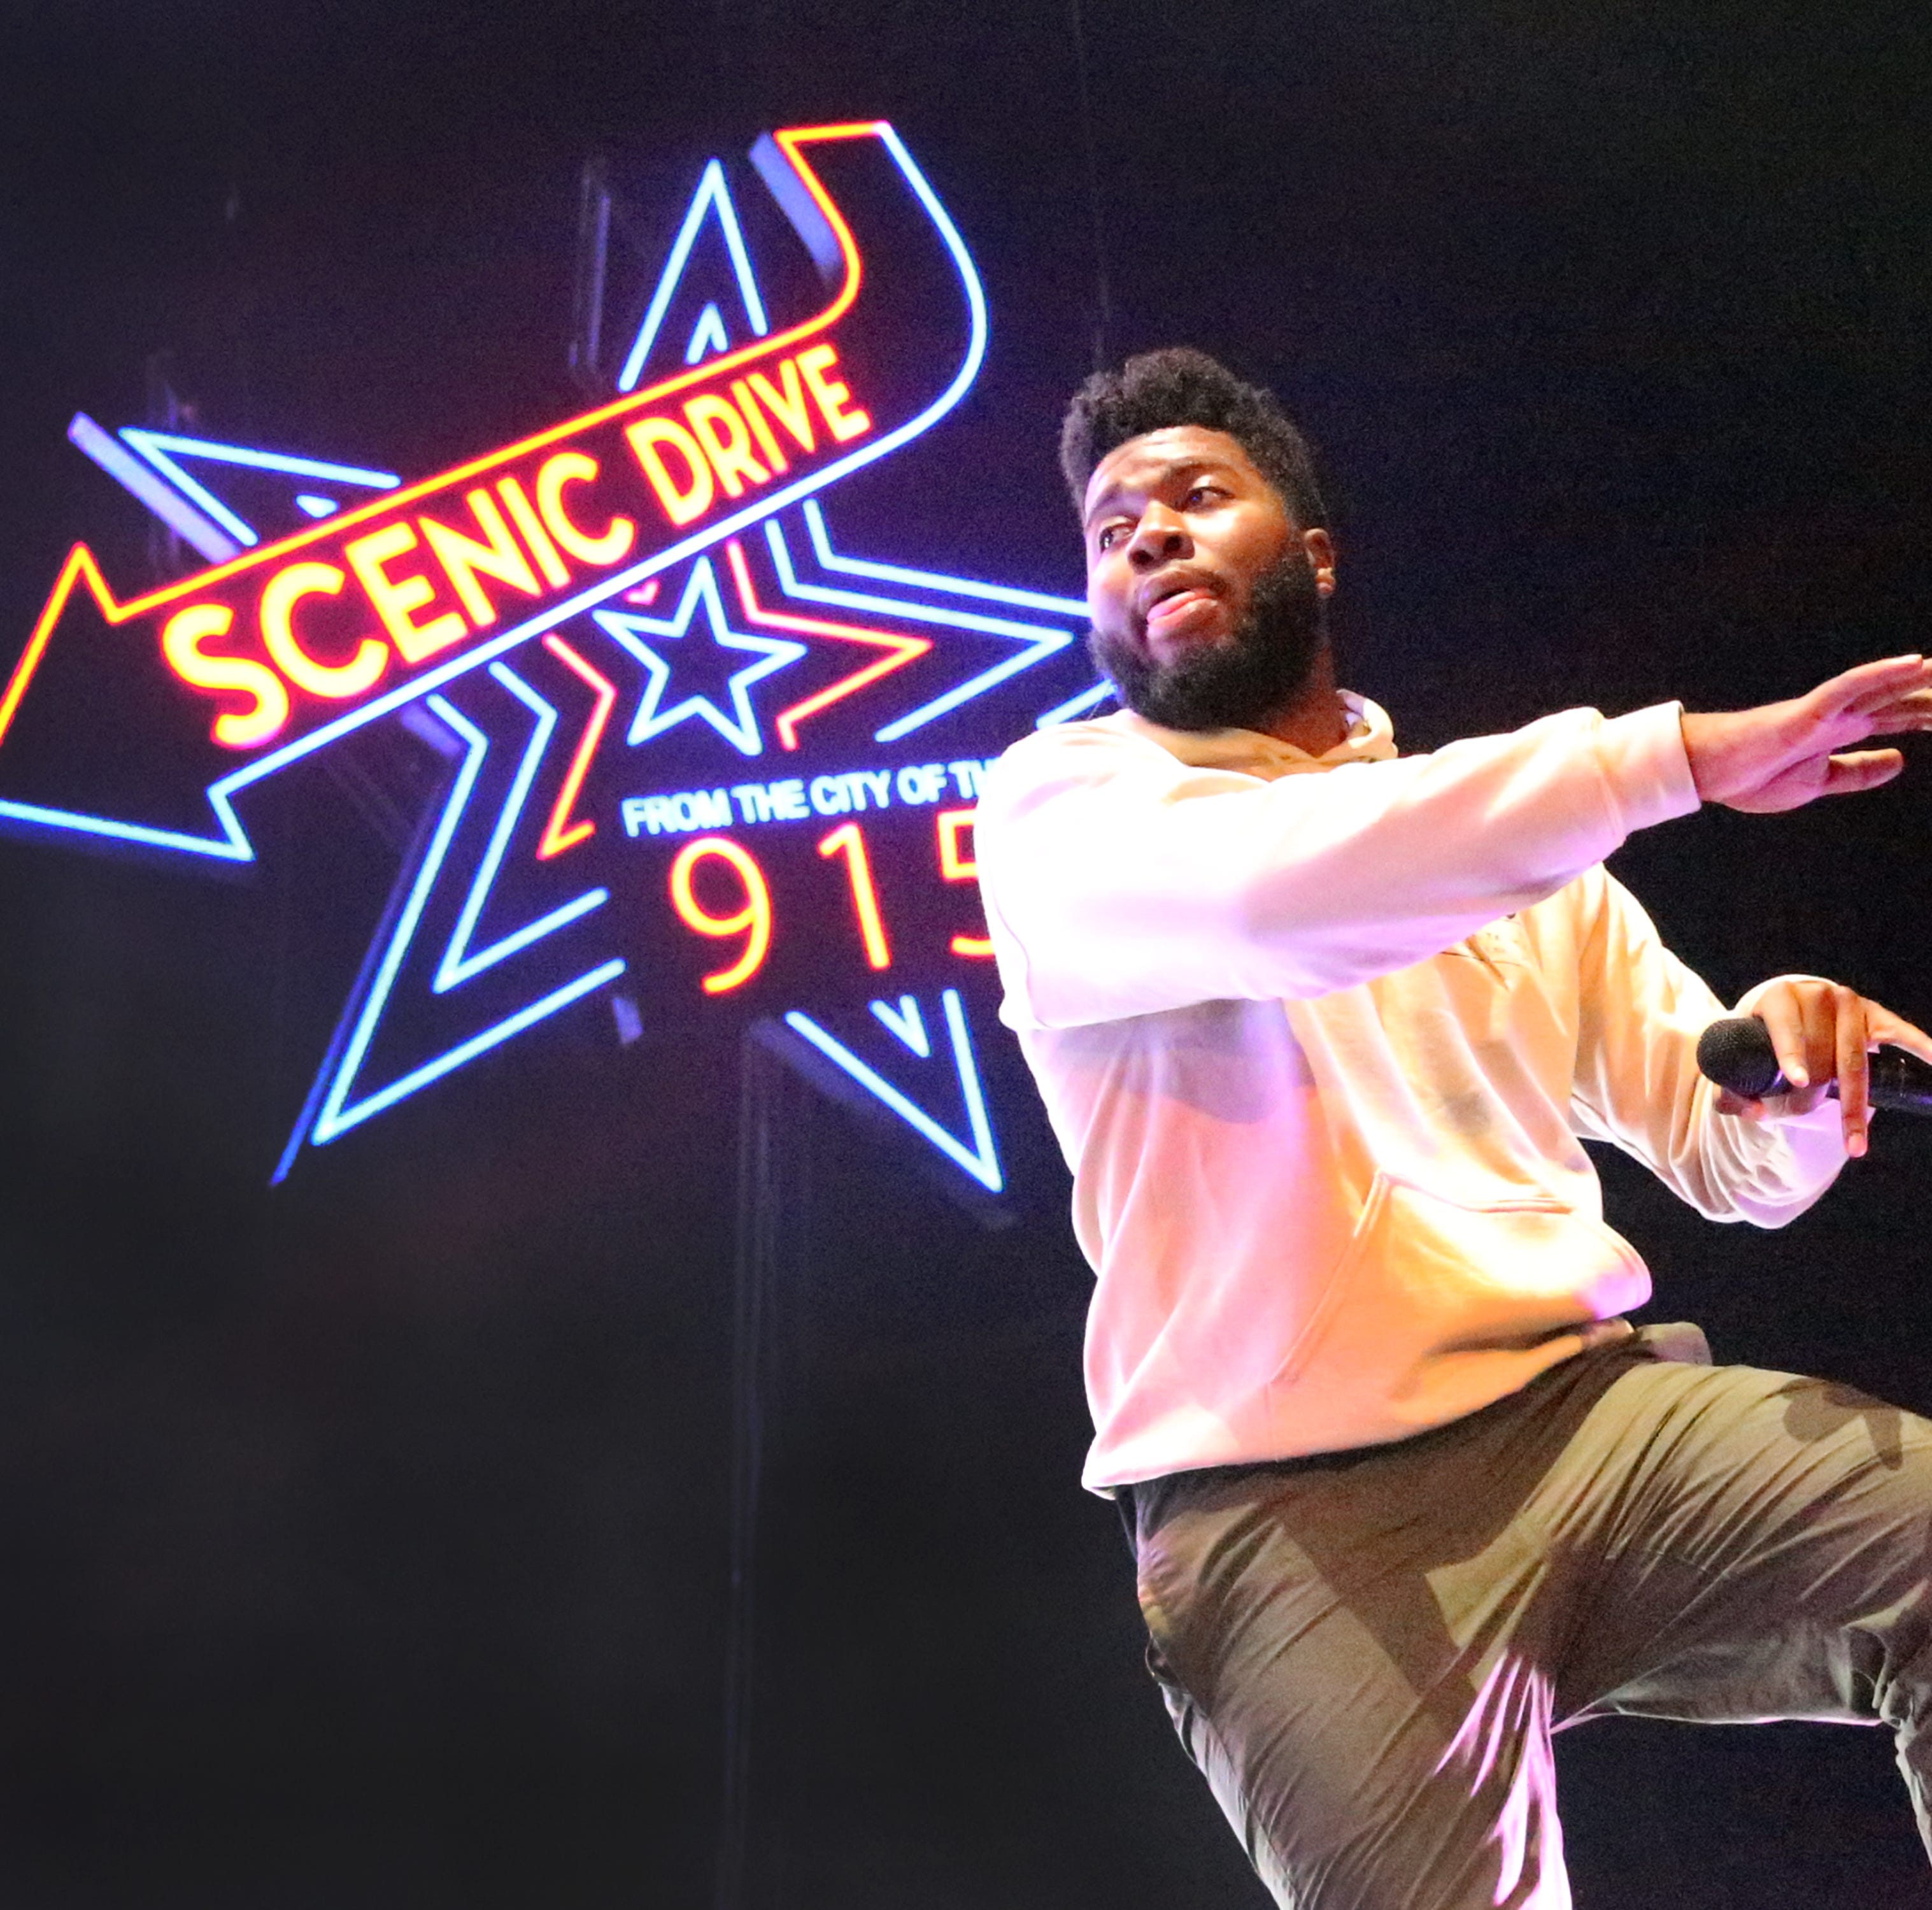 El Paso R&B singer Khalid makes Time magazine's 100 Most Influential People 2019 list